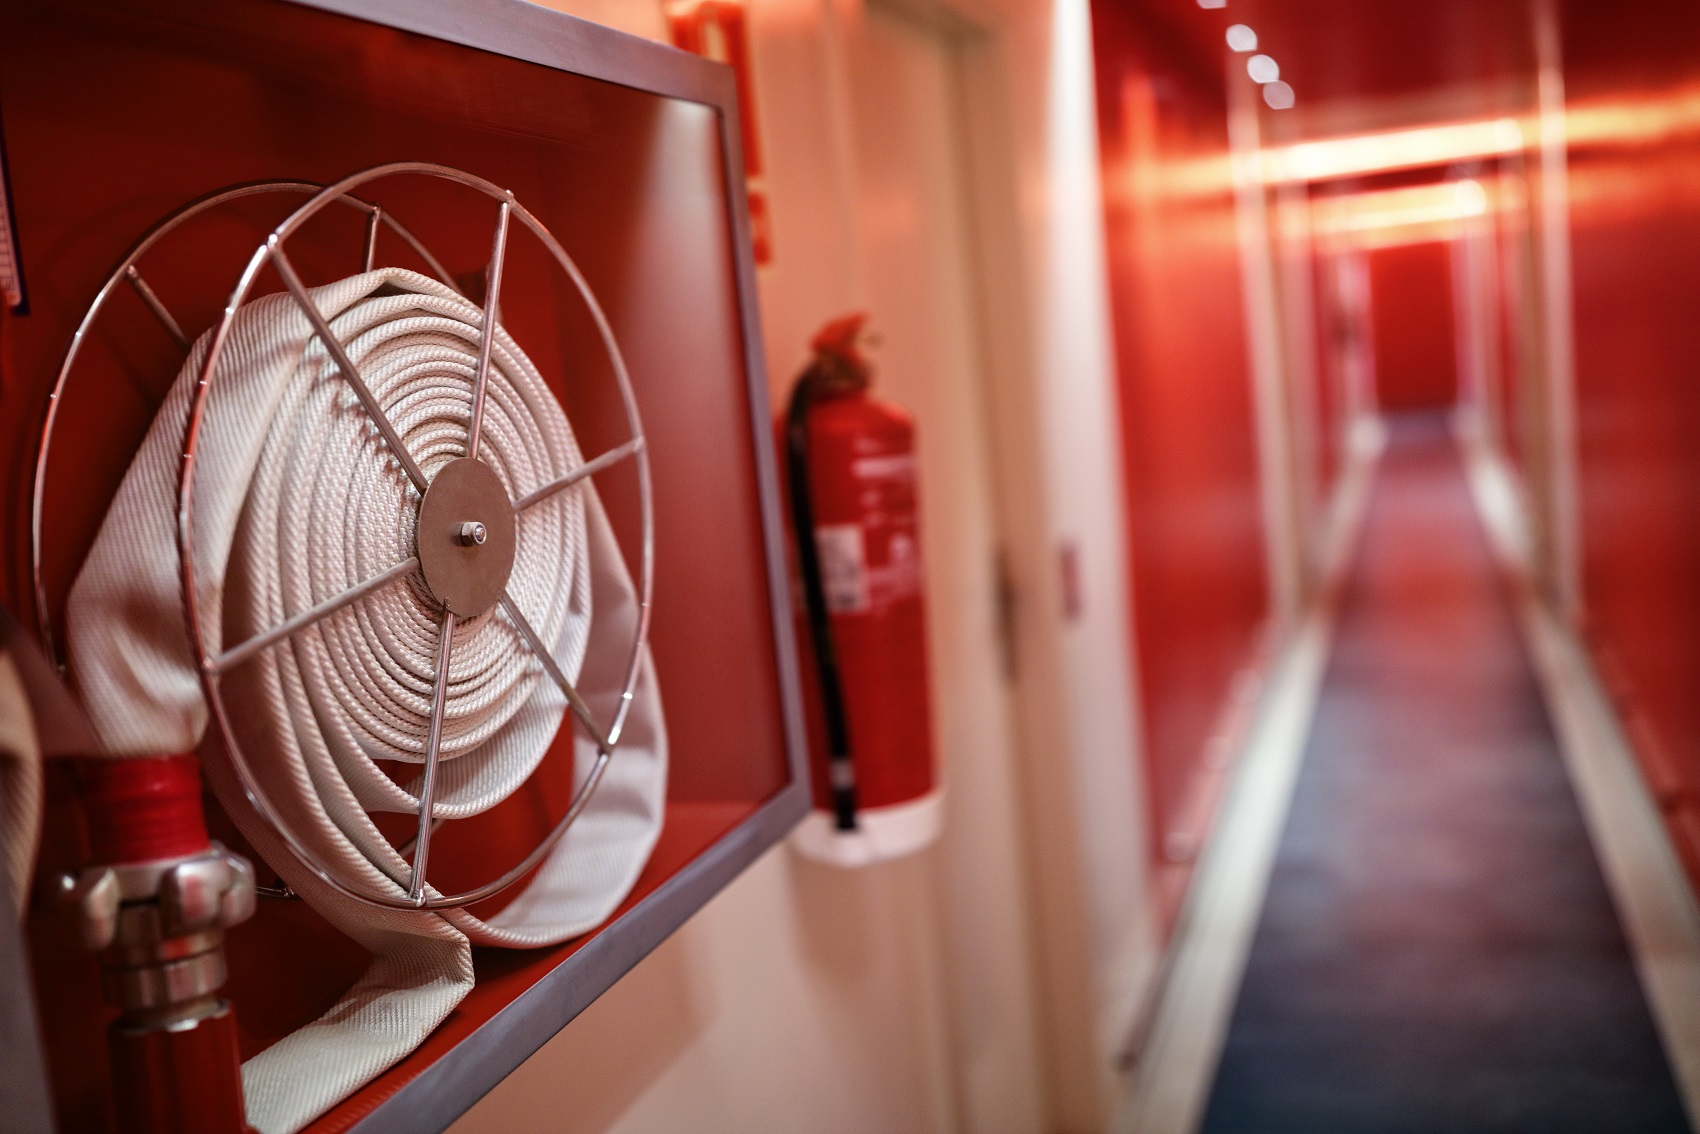 Fire Safety Policy Document within a University – What should it Contain?